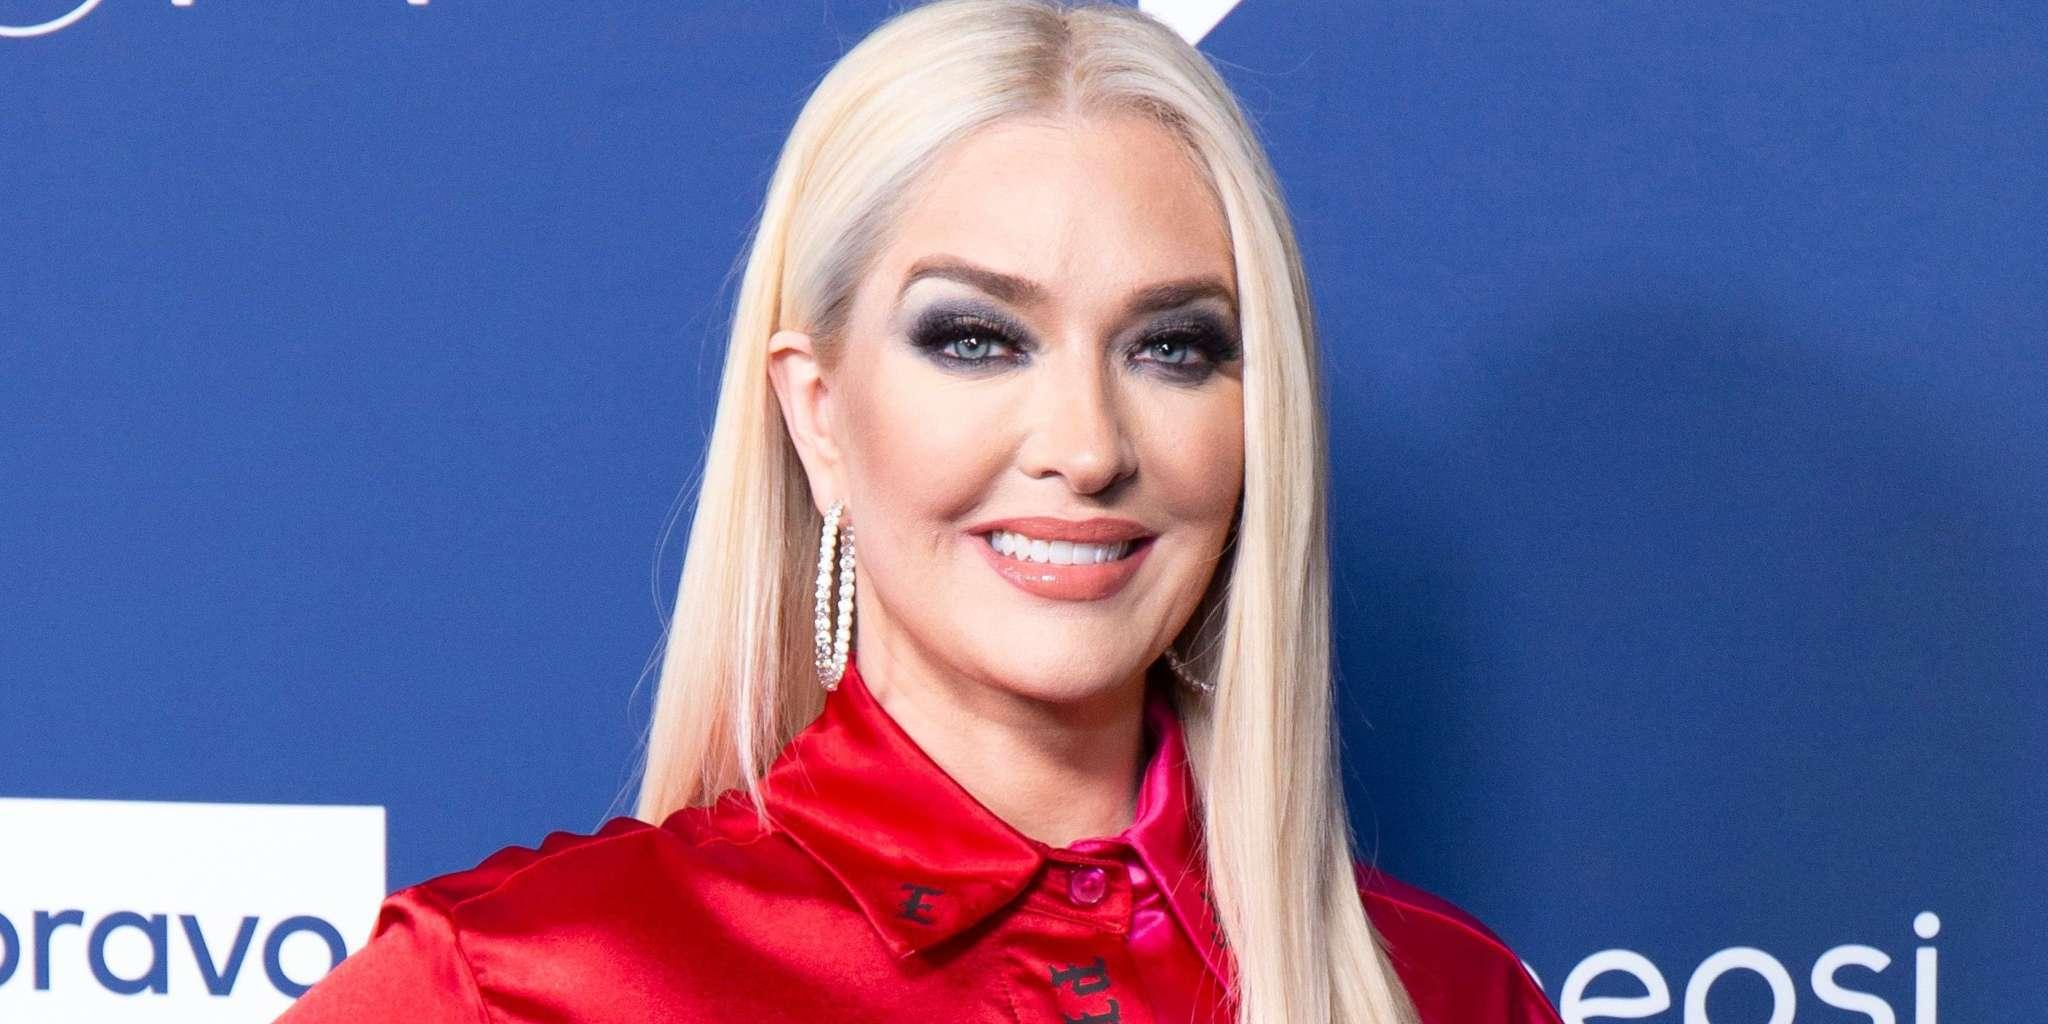 Has Erika Jayne Been Demoted To A Friend Of On RHOBH? Fans React To Rumor